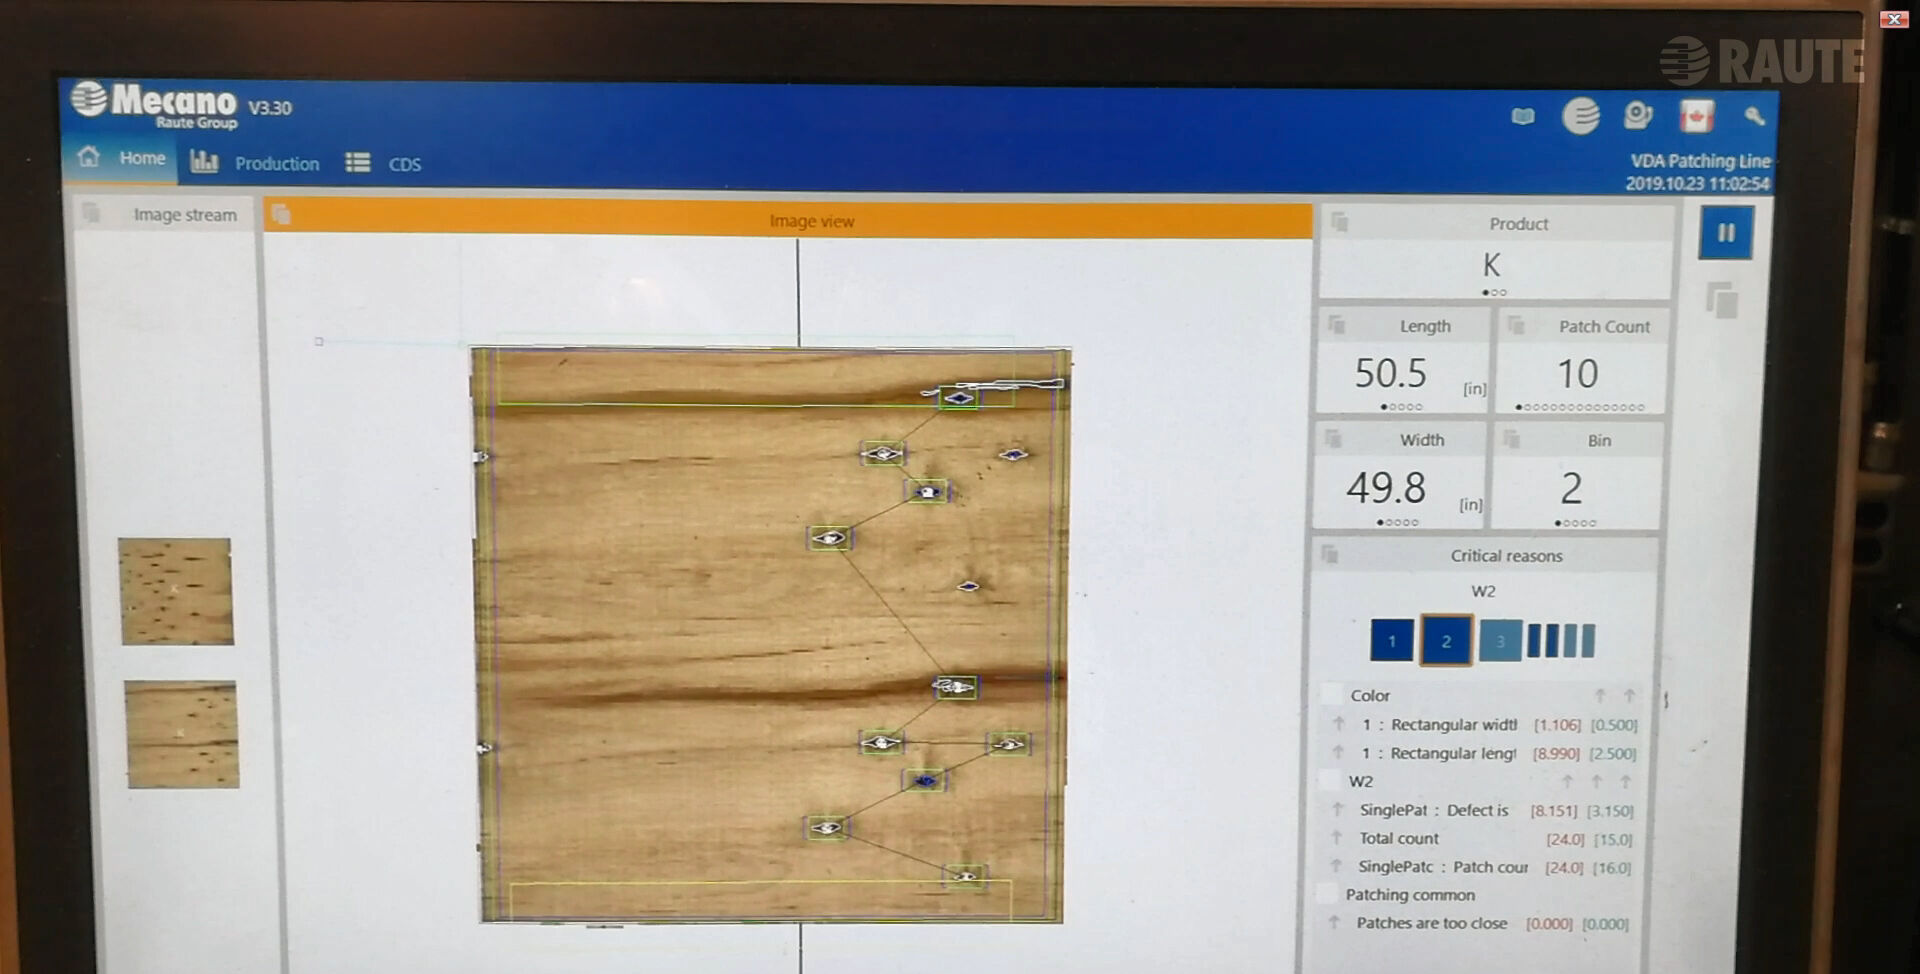 Latest Raute vision system detects patchable defects and grades veneer at the same time